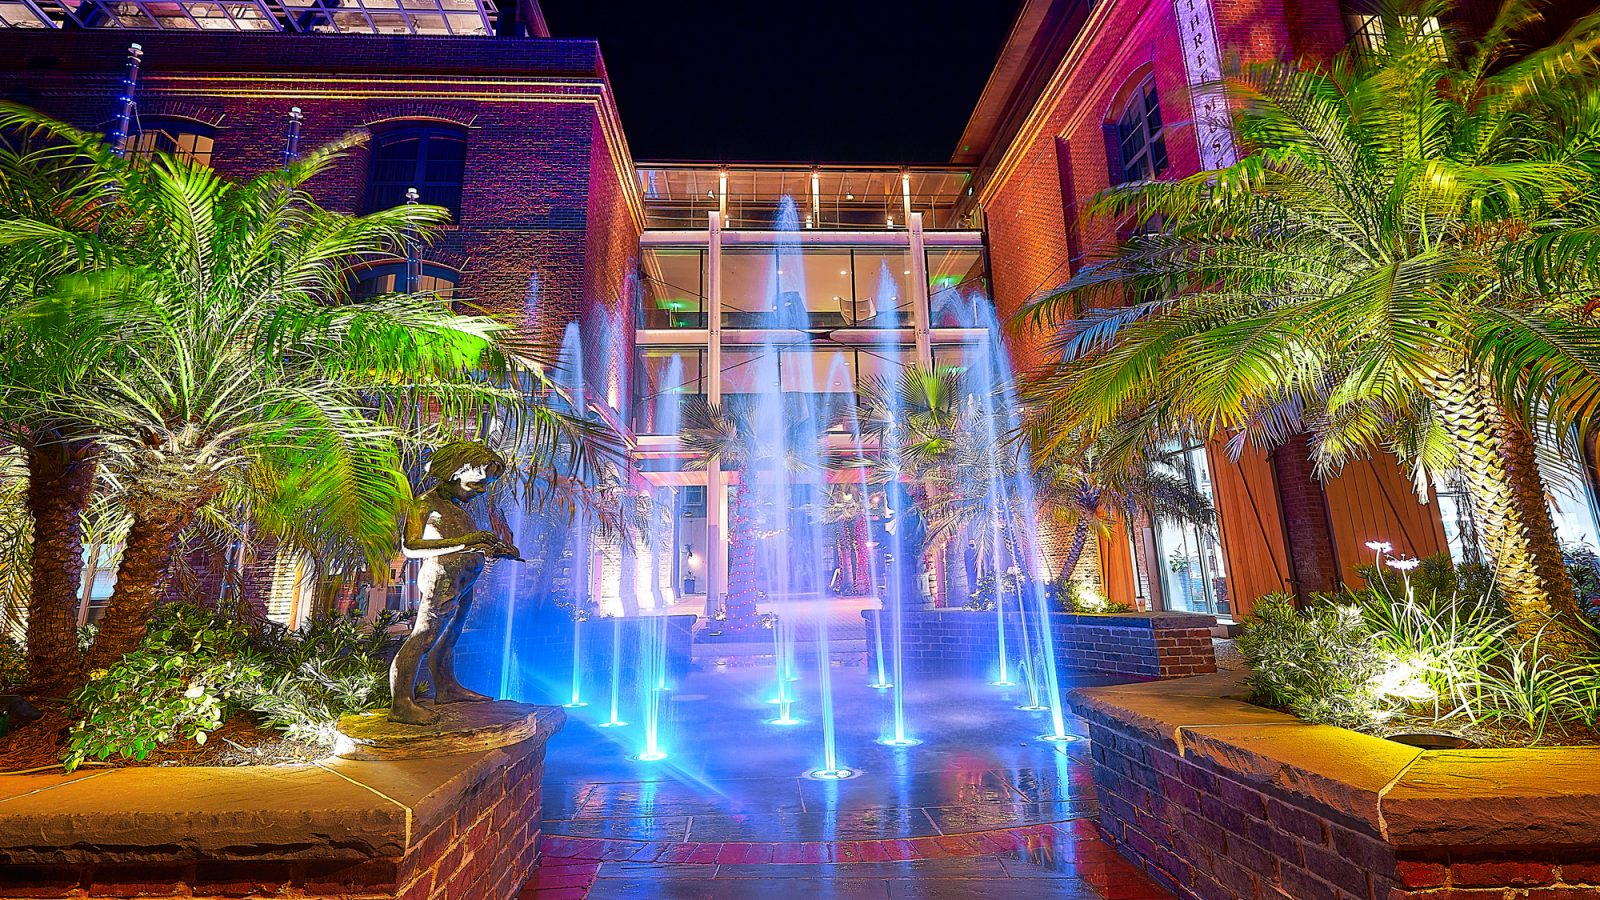 The splash pad of the Plant Riverside District at night, illuminated by lights.